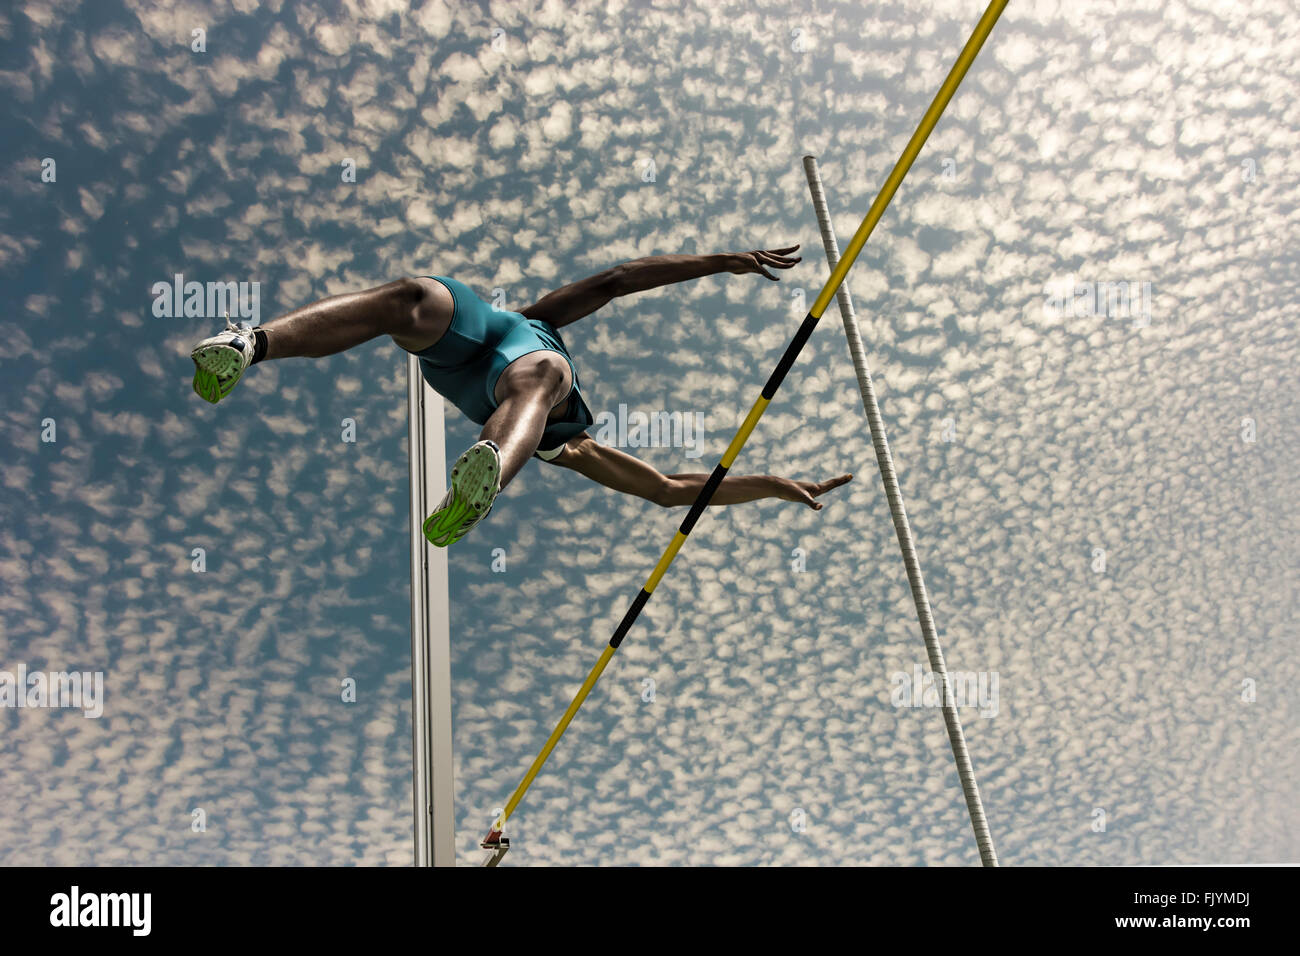 Male pole vaulter jumps  over the yellow black striped bar - Stock Image